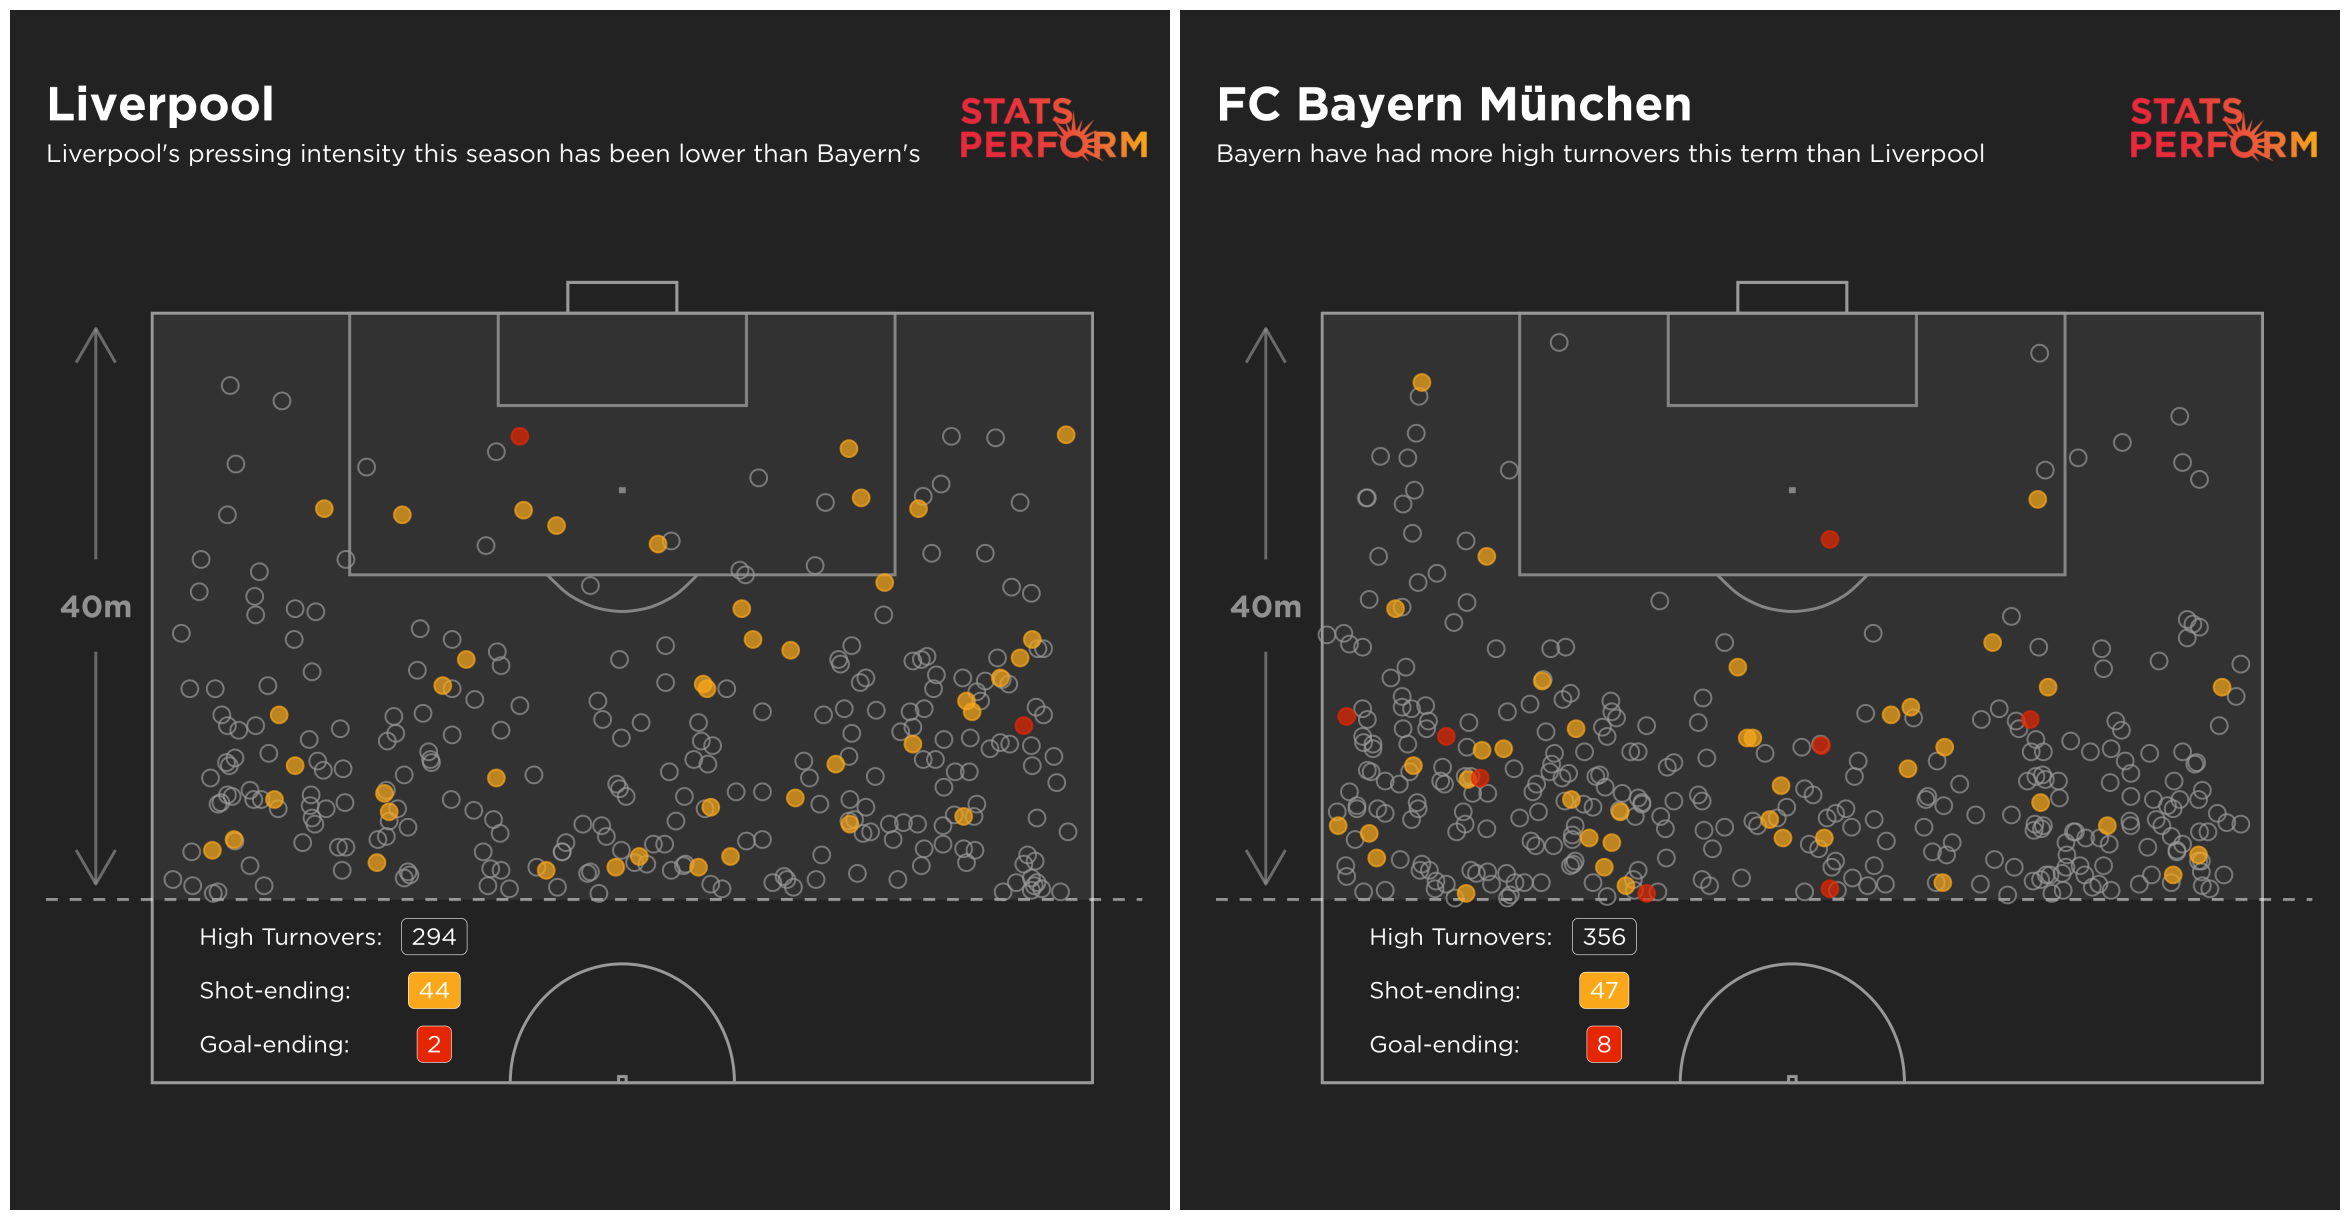 Bayern are forcing more high turnovers than Liverpool this season